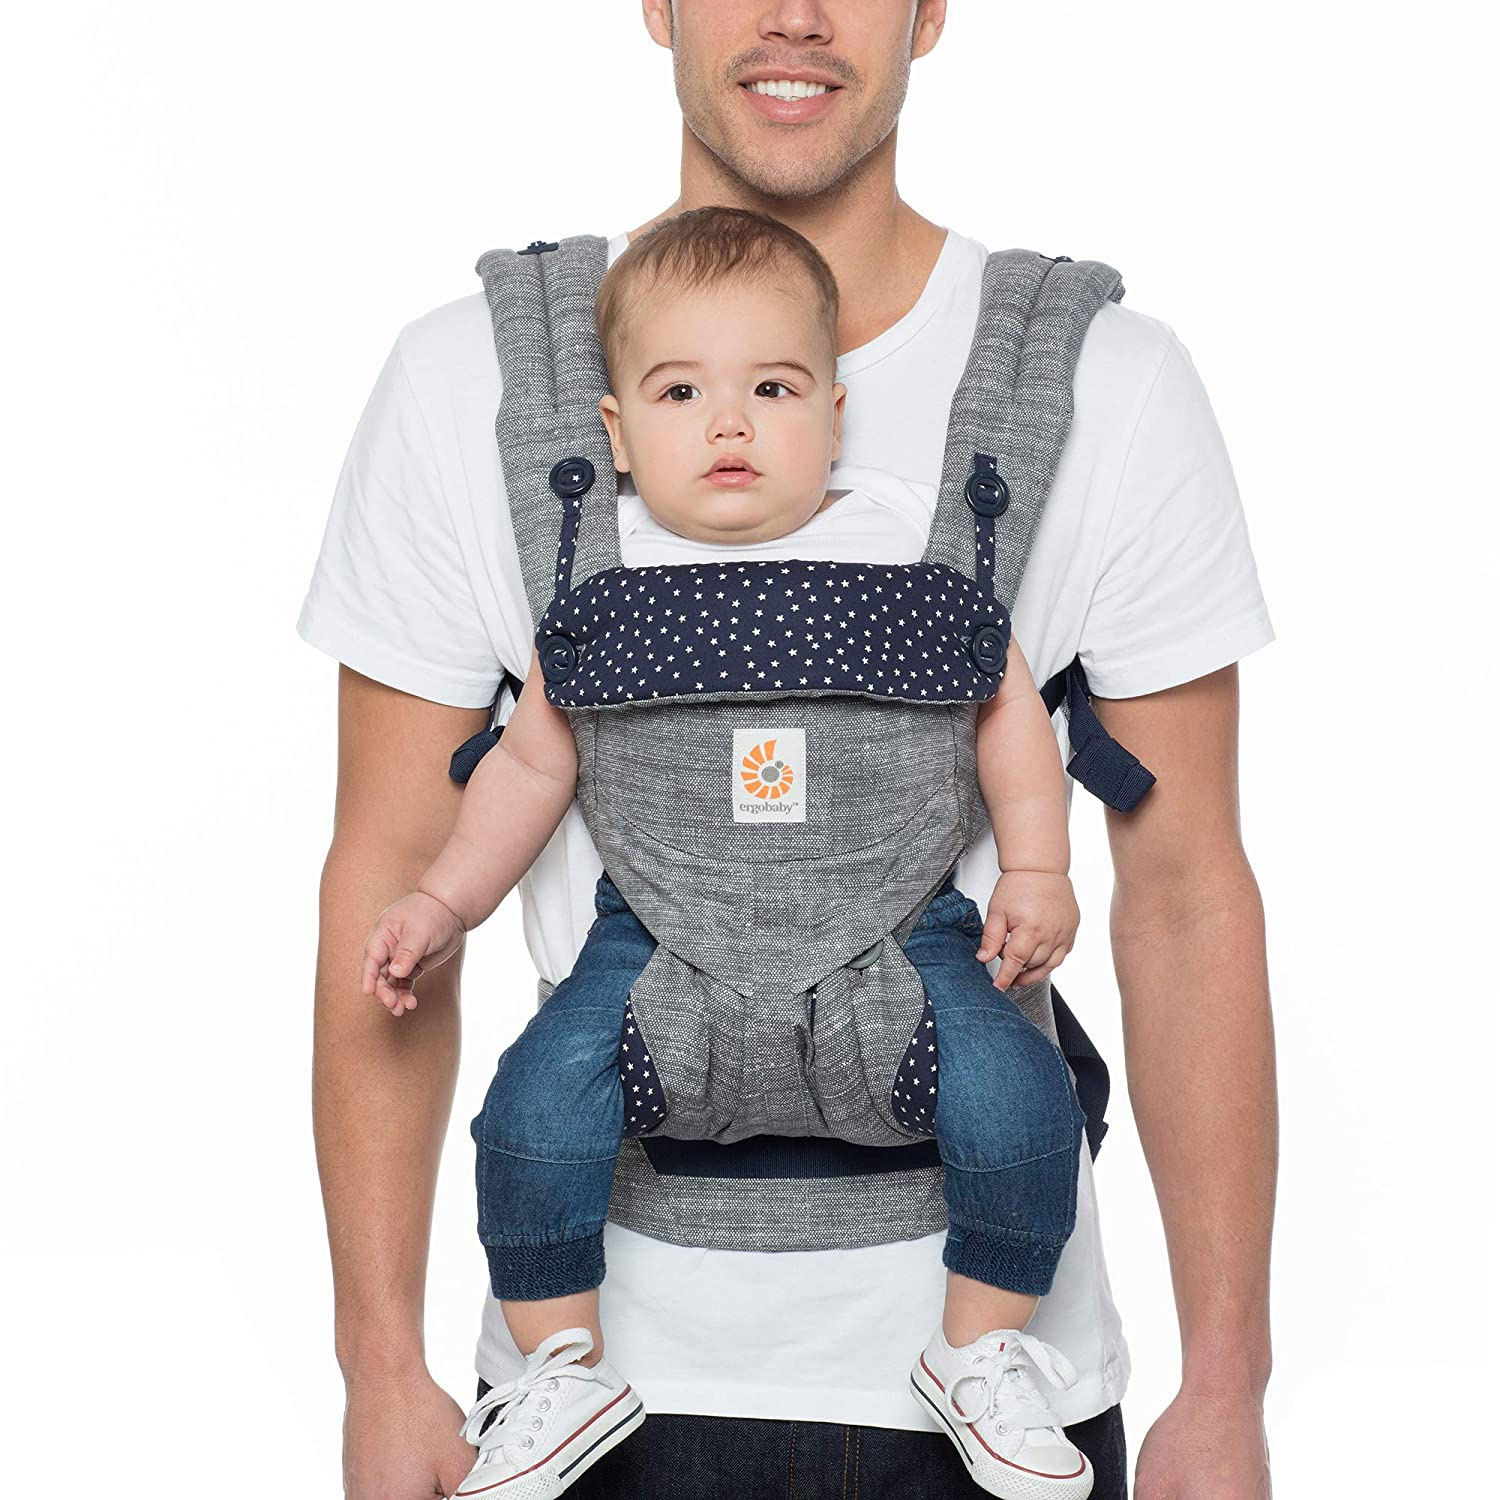 Ergobaby 360 All Carry Positions Award-Winning Cool Mesh Ergonomic Baby Carrier, Carbon Grey BC360PBLKGRY